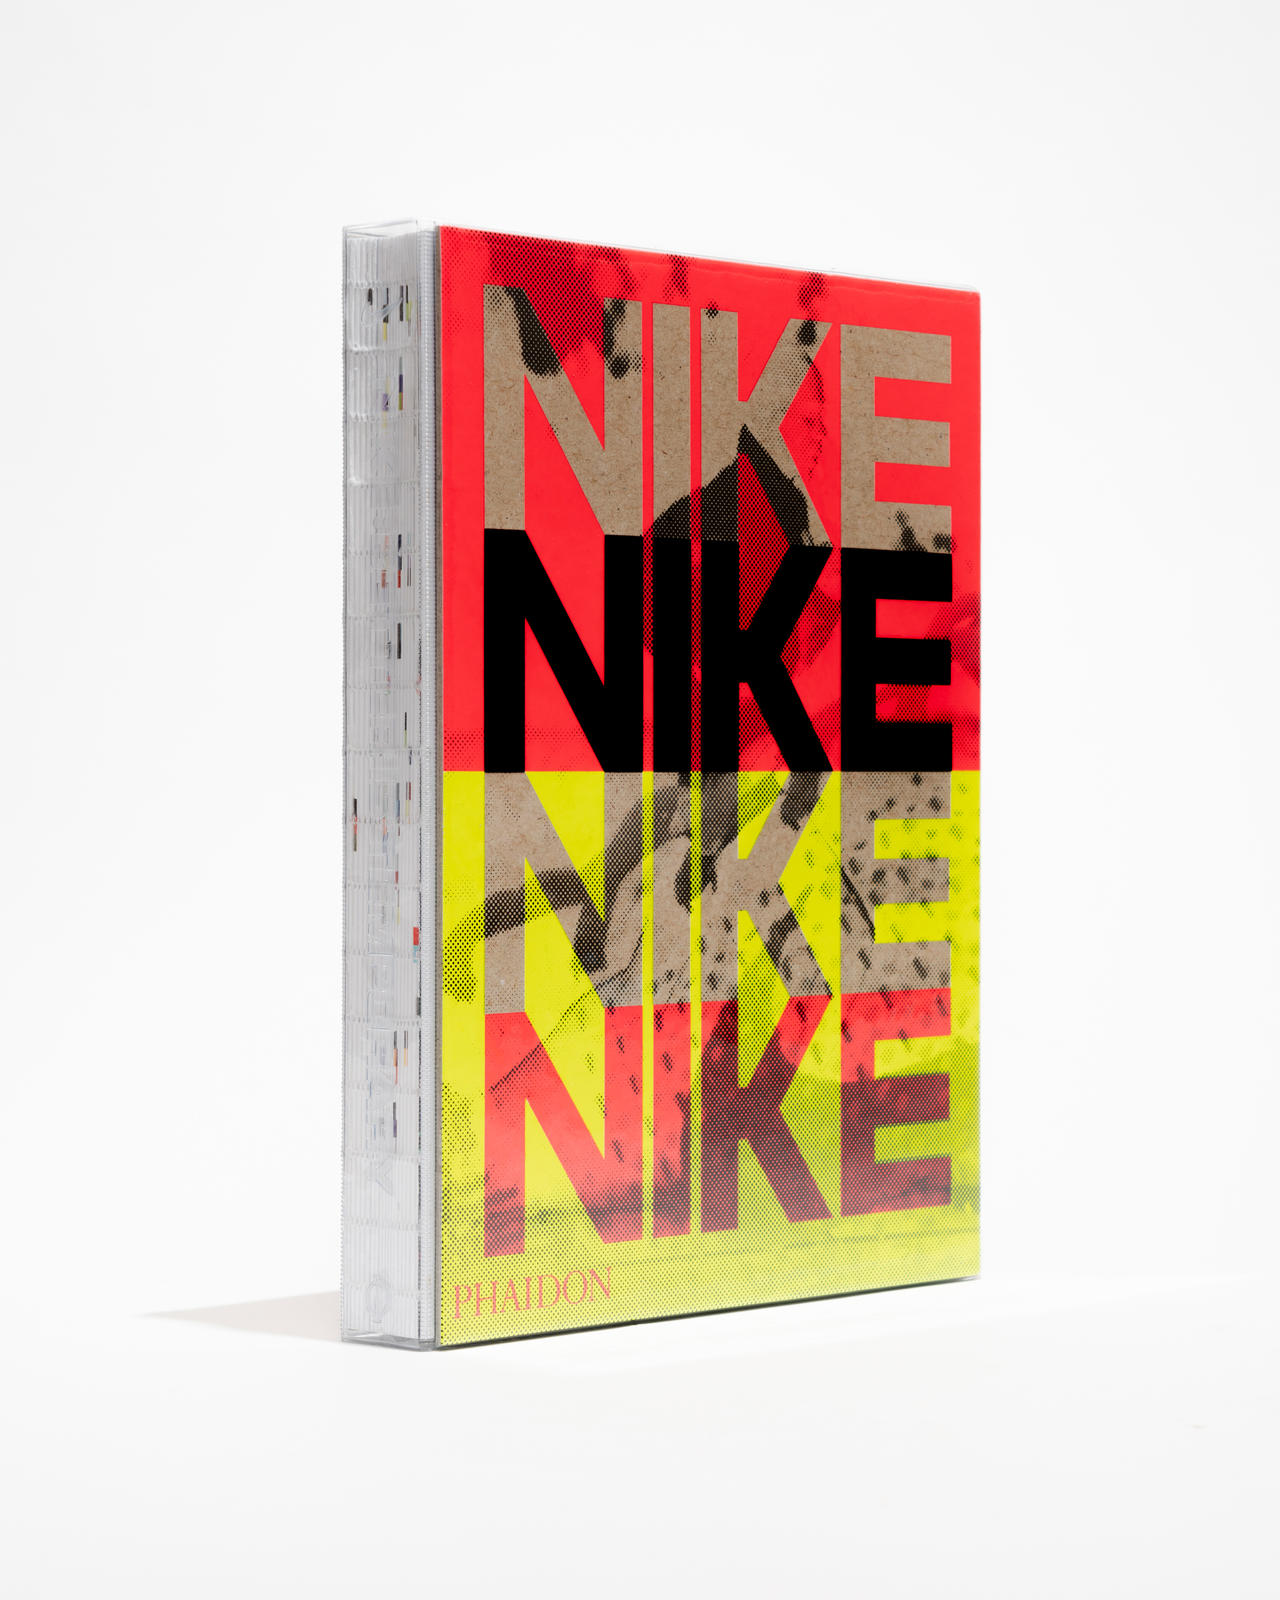 Nike: Better is Temporary Book Release  7